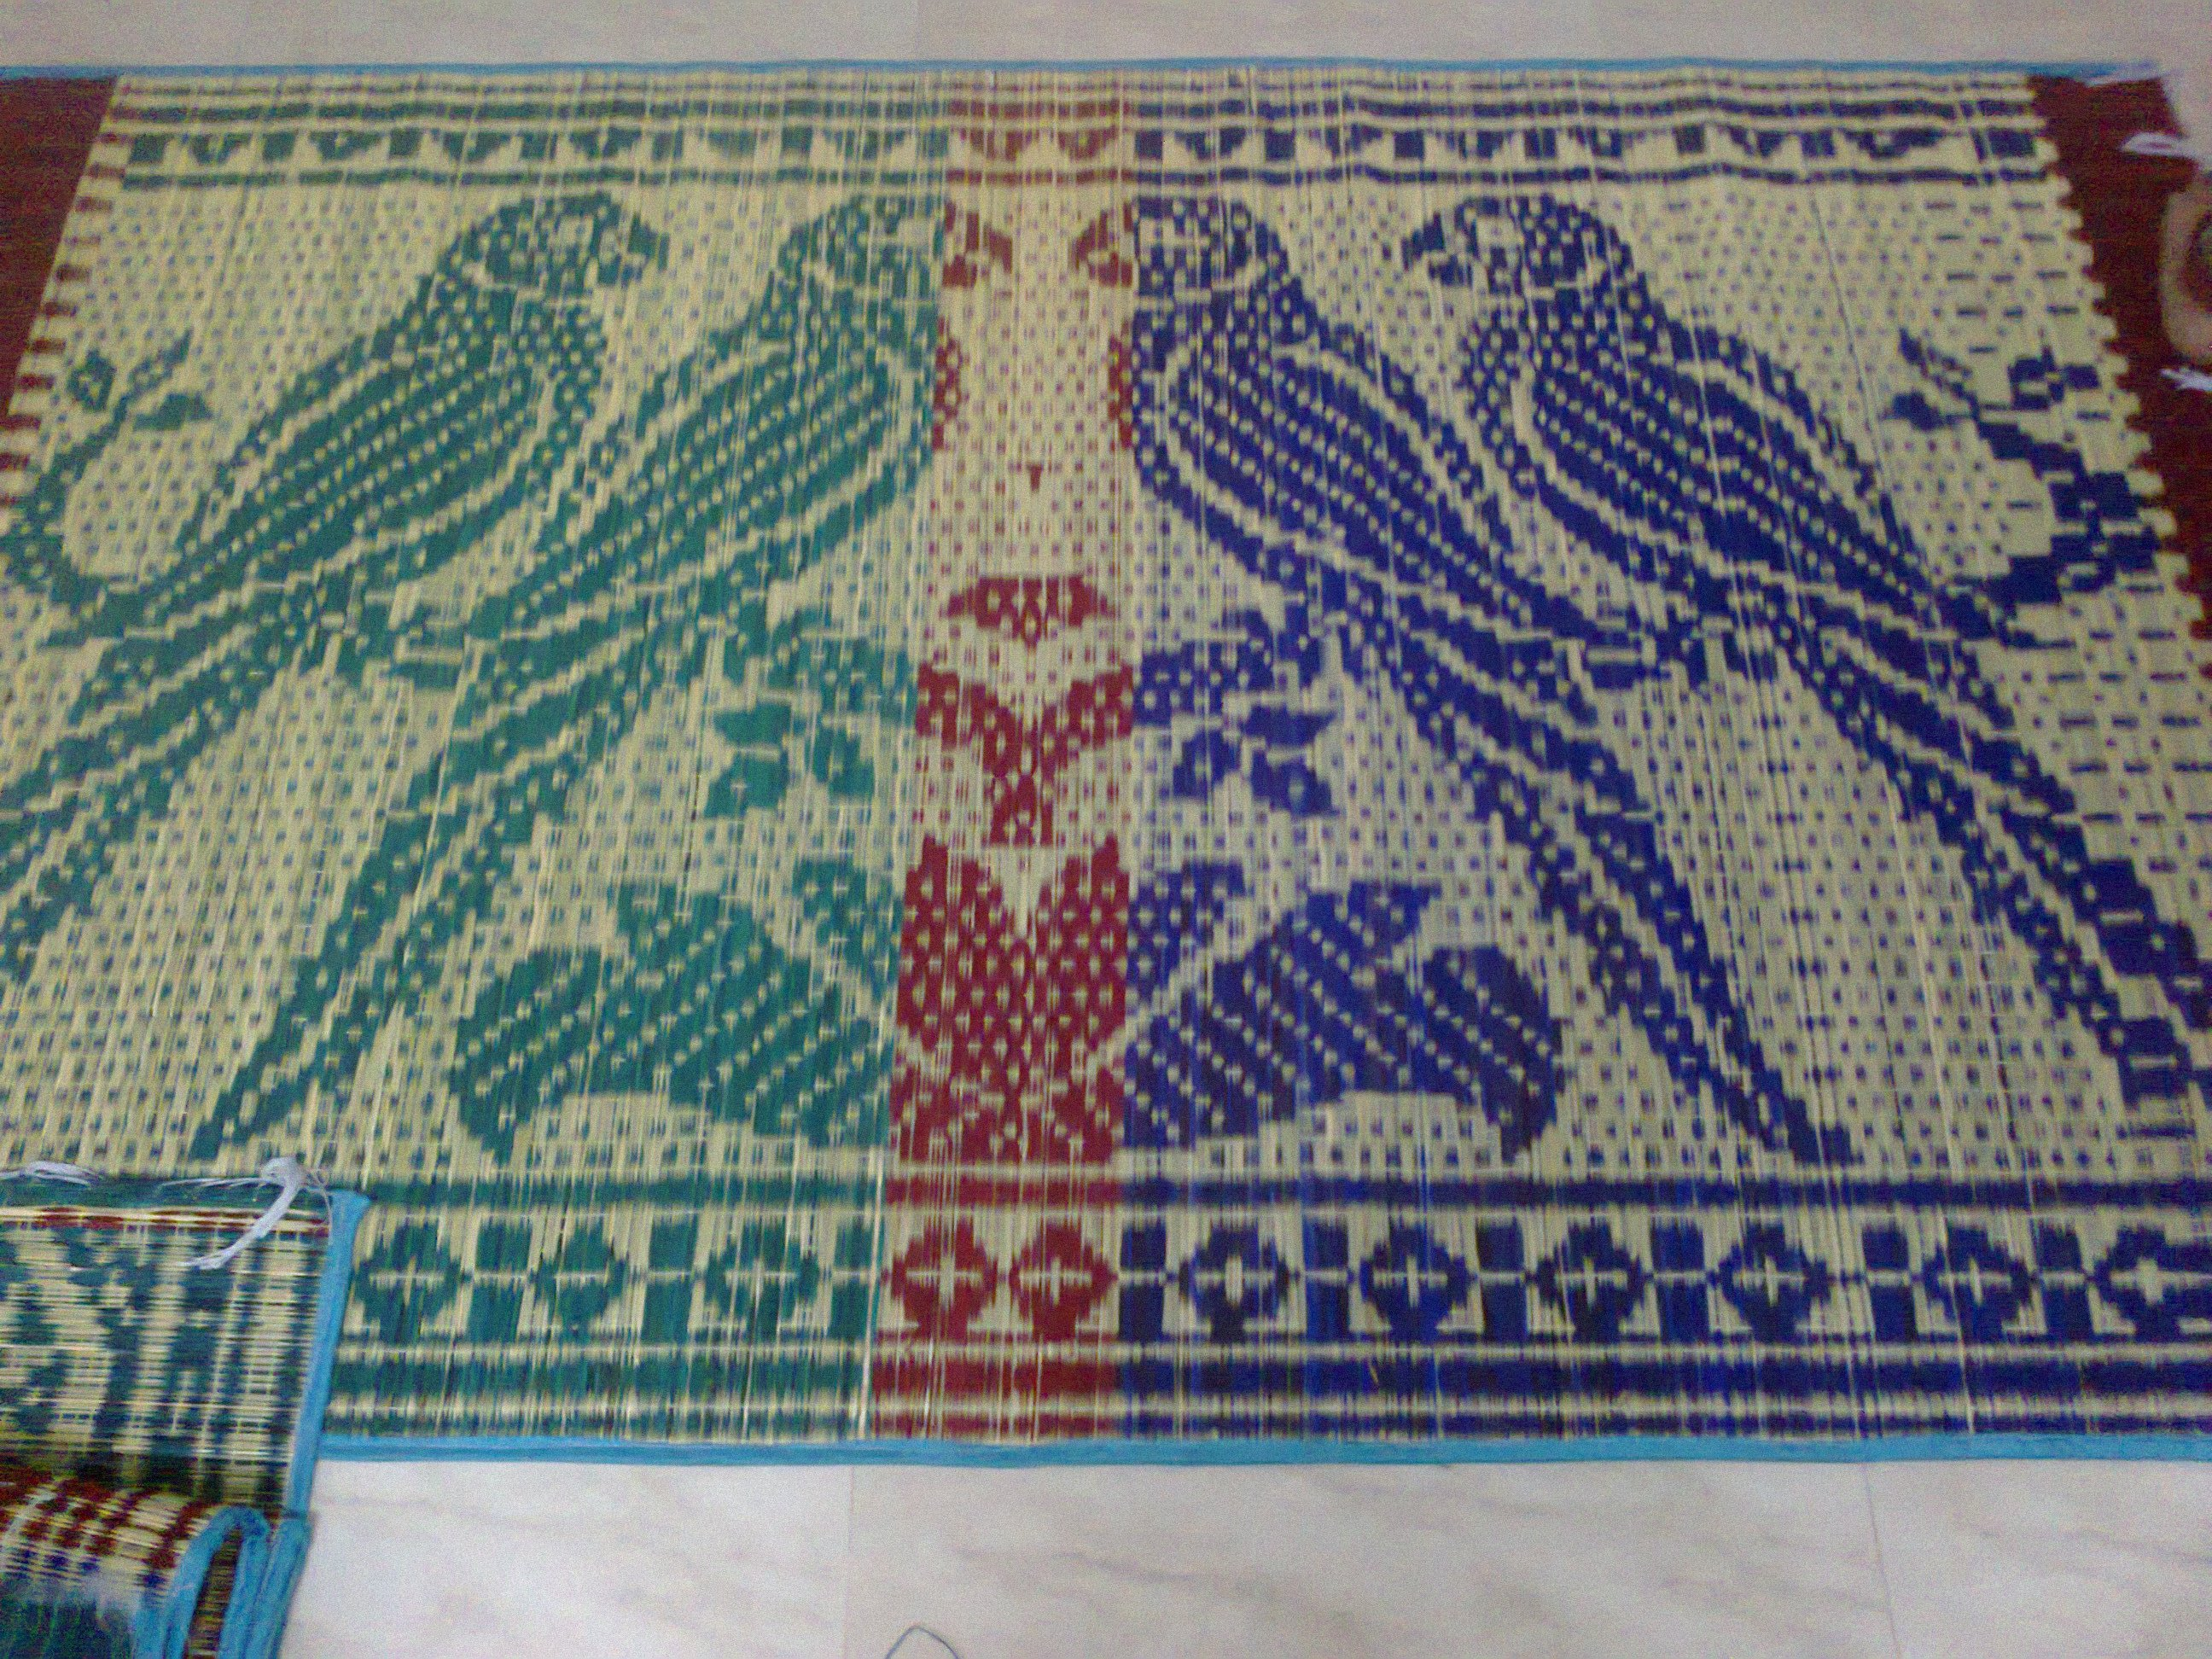 Sleeping Mat Chatai Mat Manufacturer Amp Manufacturer From Chennai India Id 213013